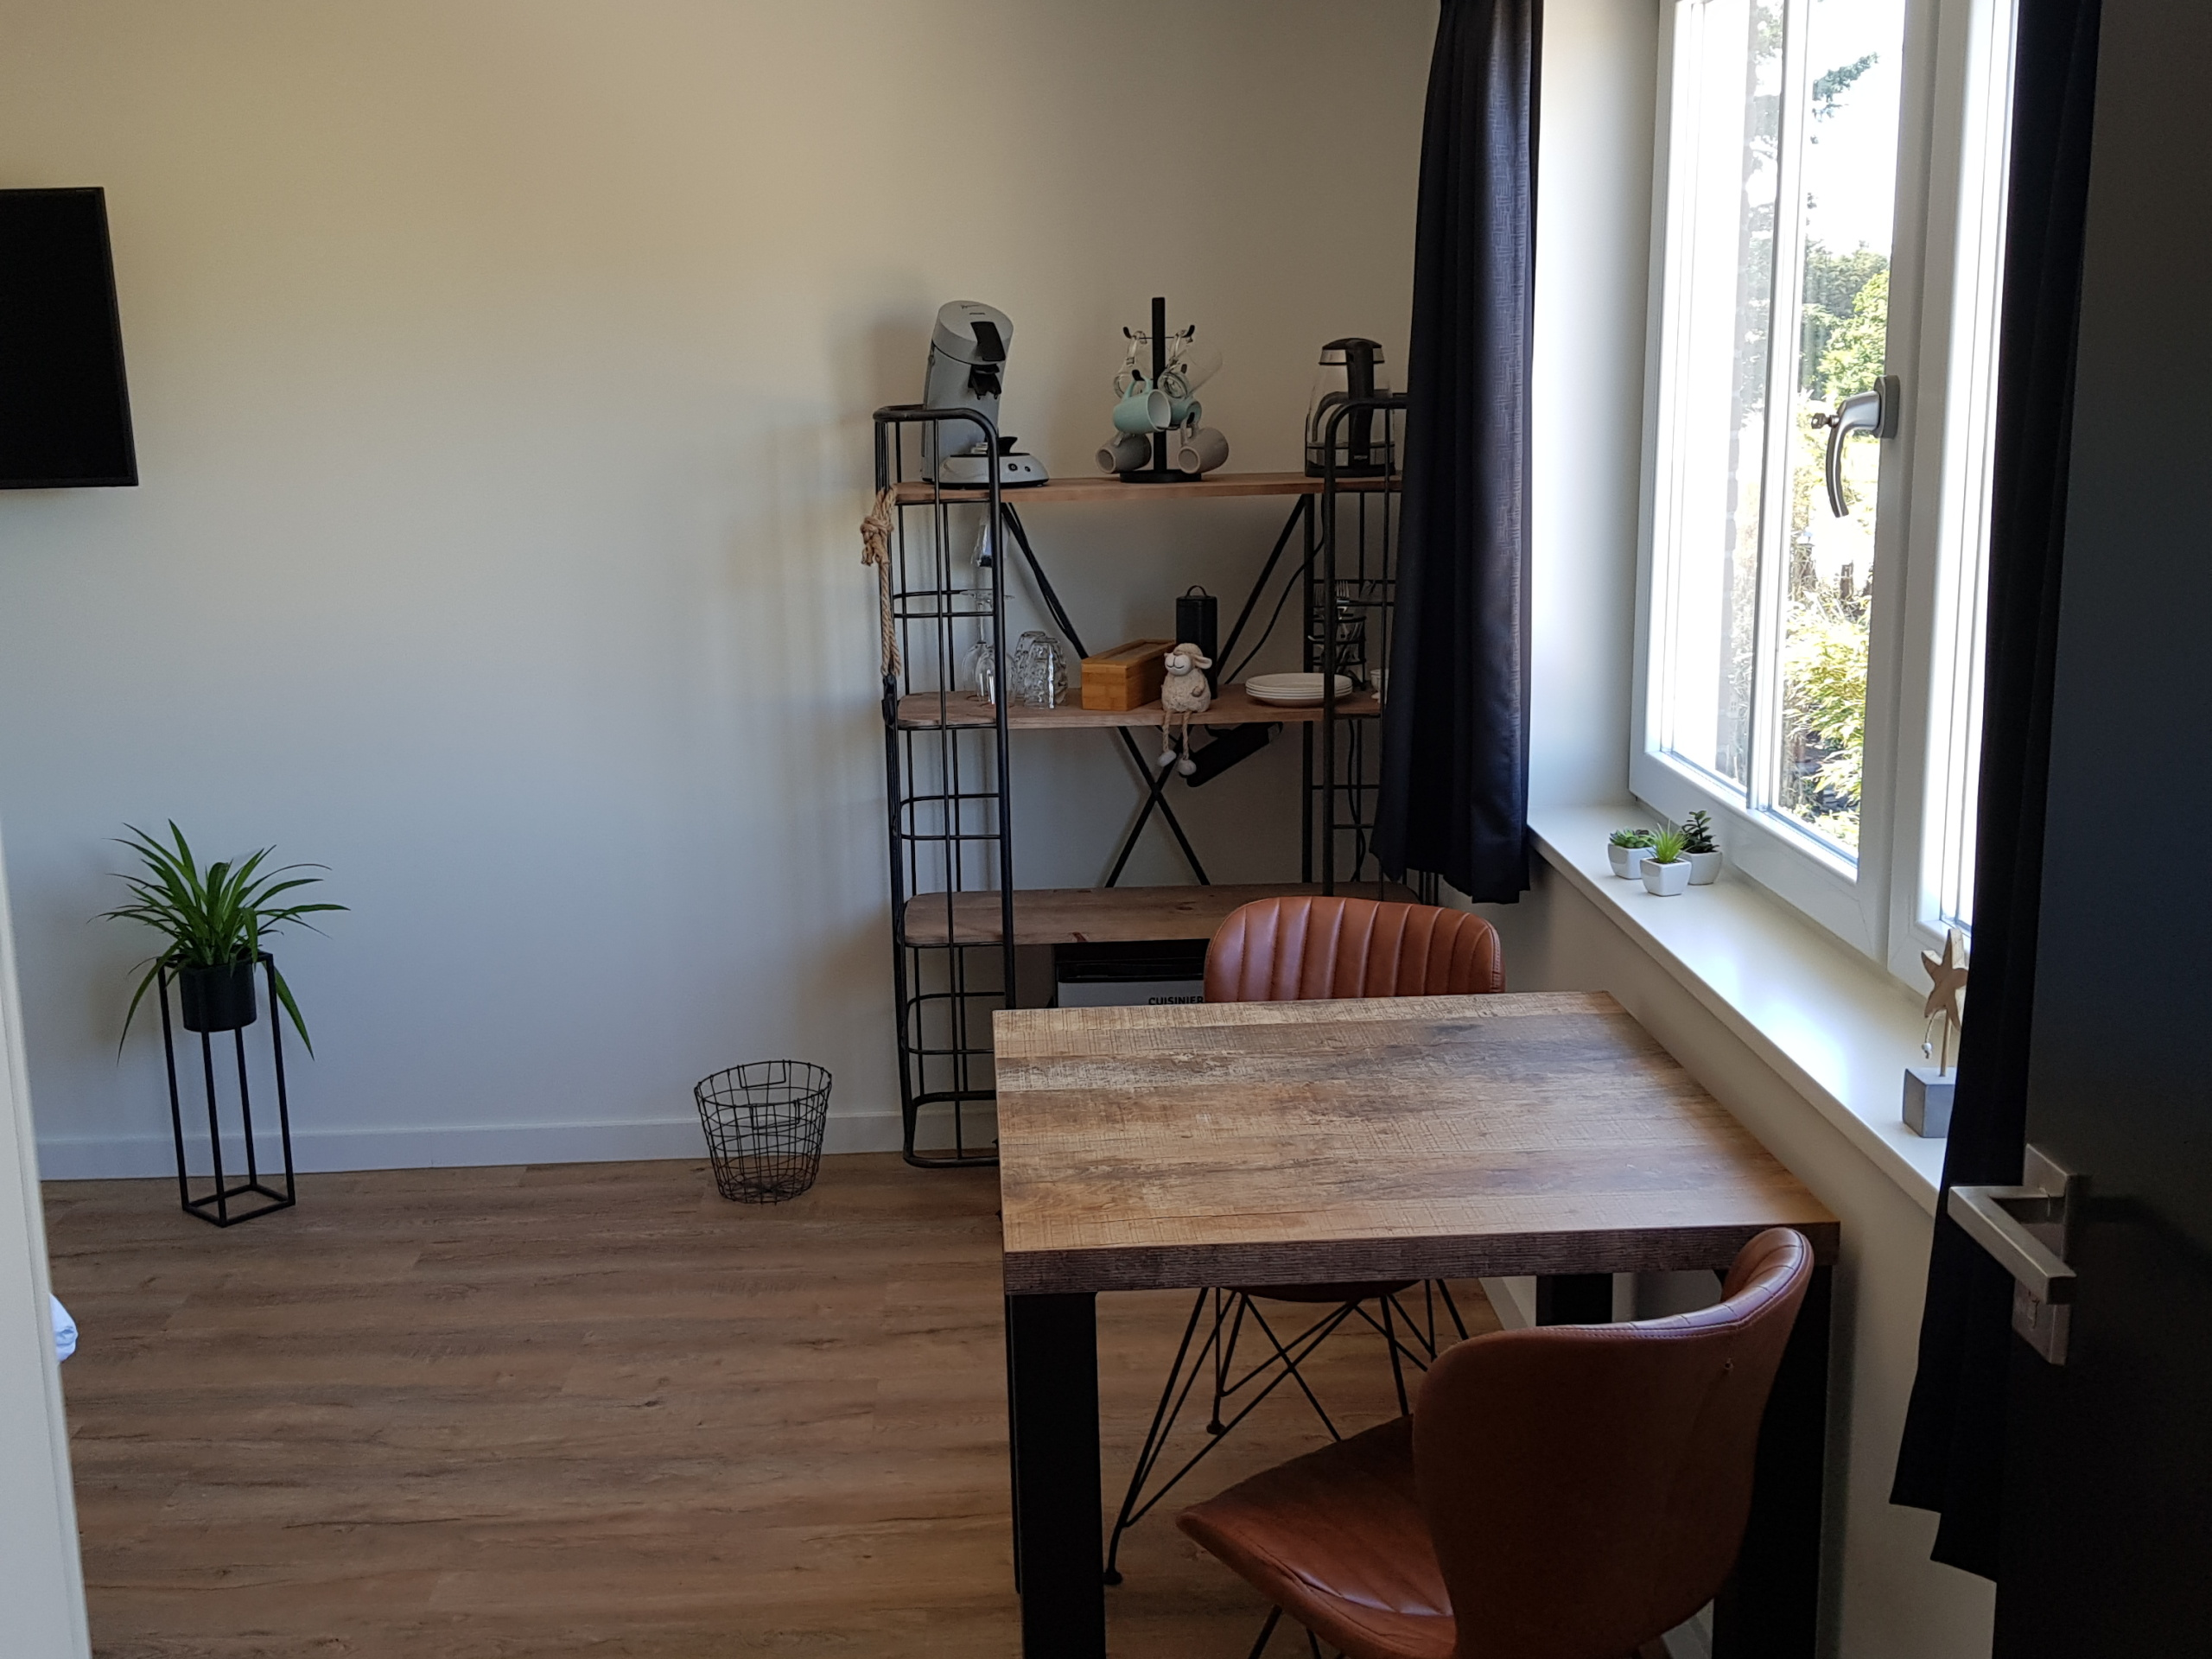 Stylish room in B&B in De Koog, within walking distance of the beach and center